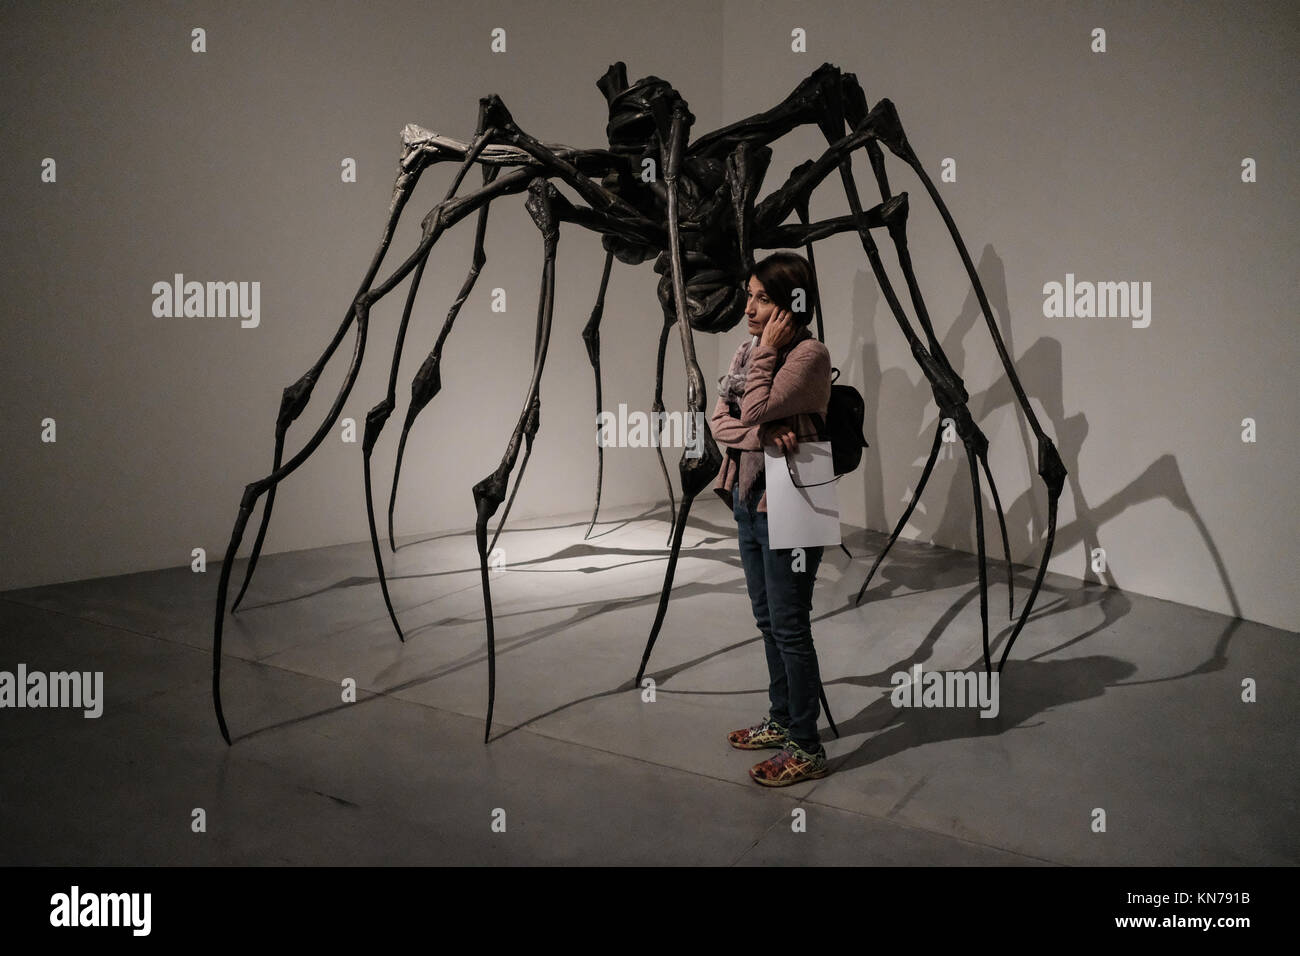 A woman studies the art work of Louise Bourgeois on display in the Tel Aviv Museum of Art. - Stock Image